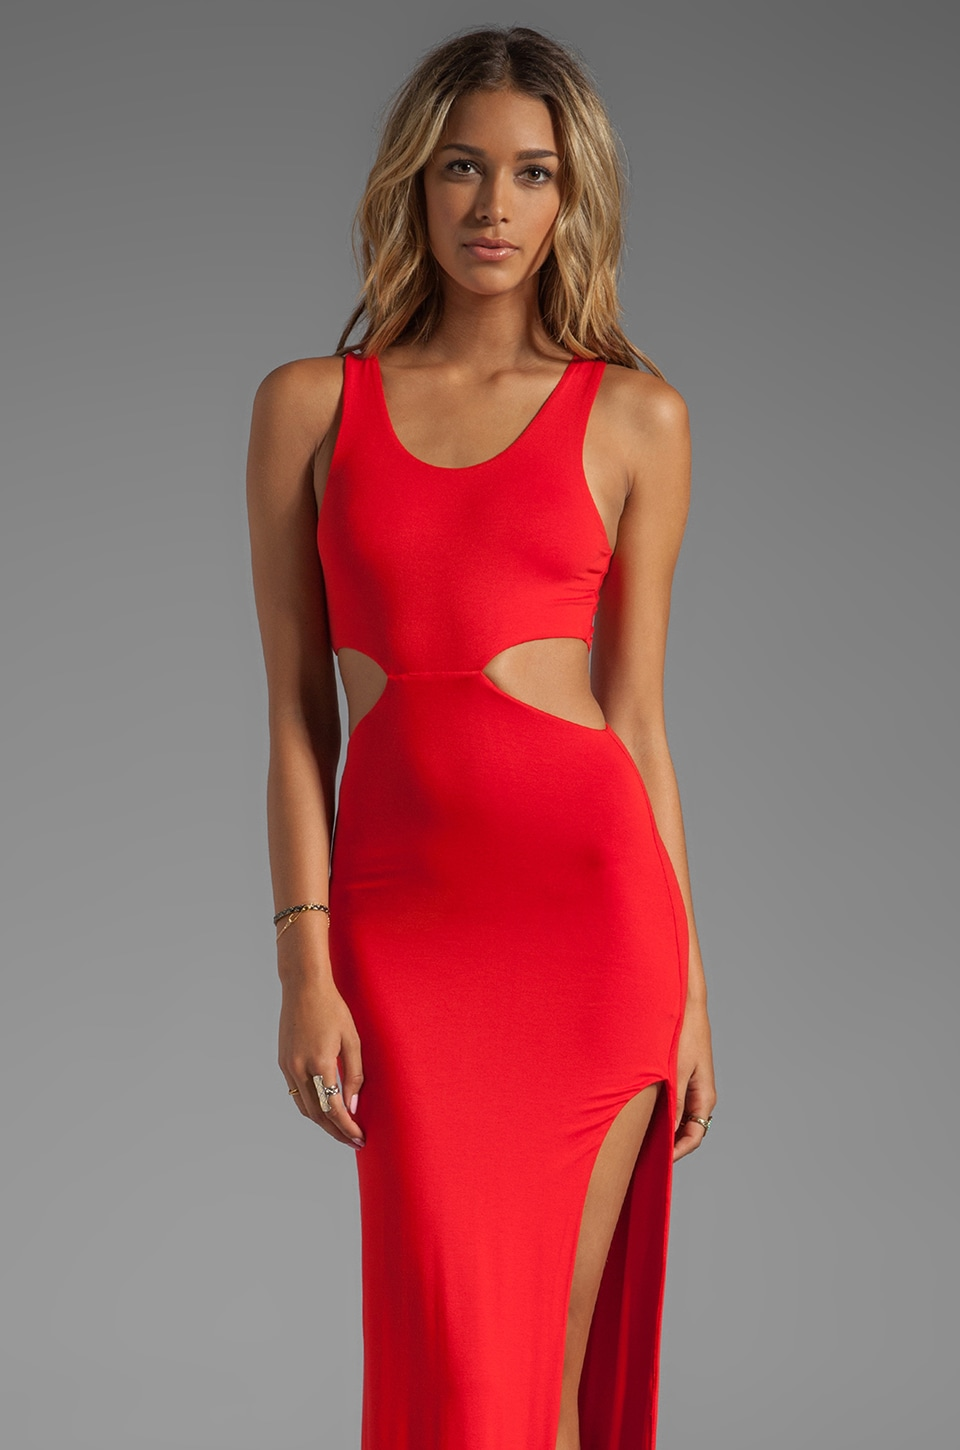 AQ/AQ Tatianna Maxi Dress in Flame Red